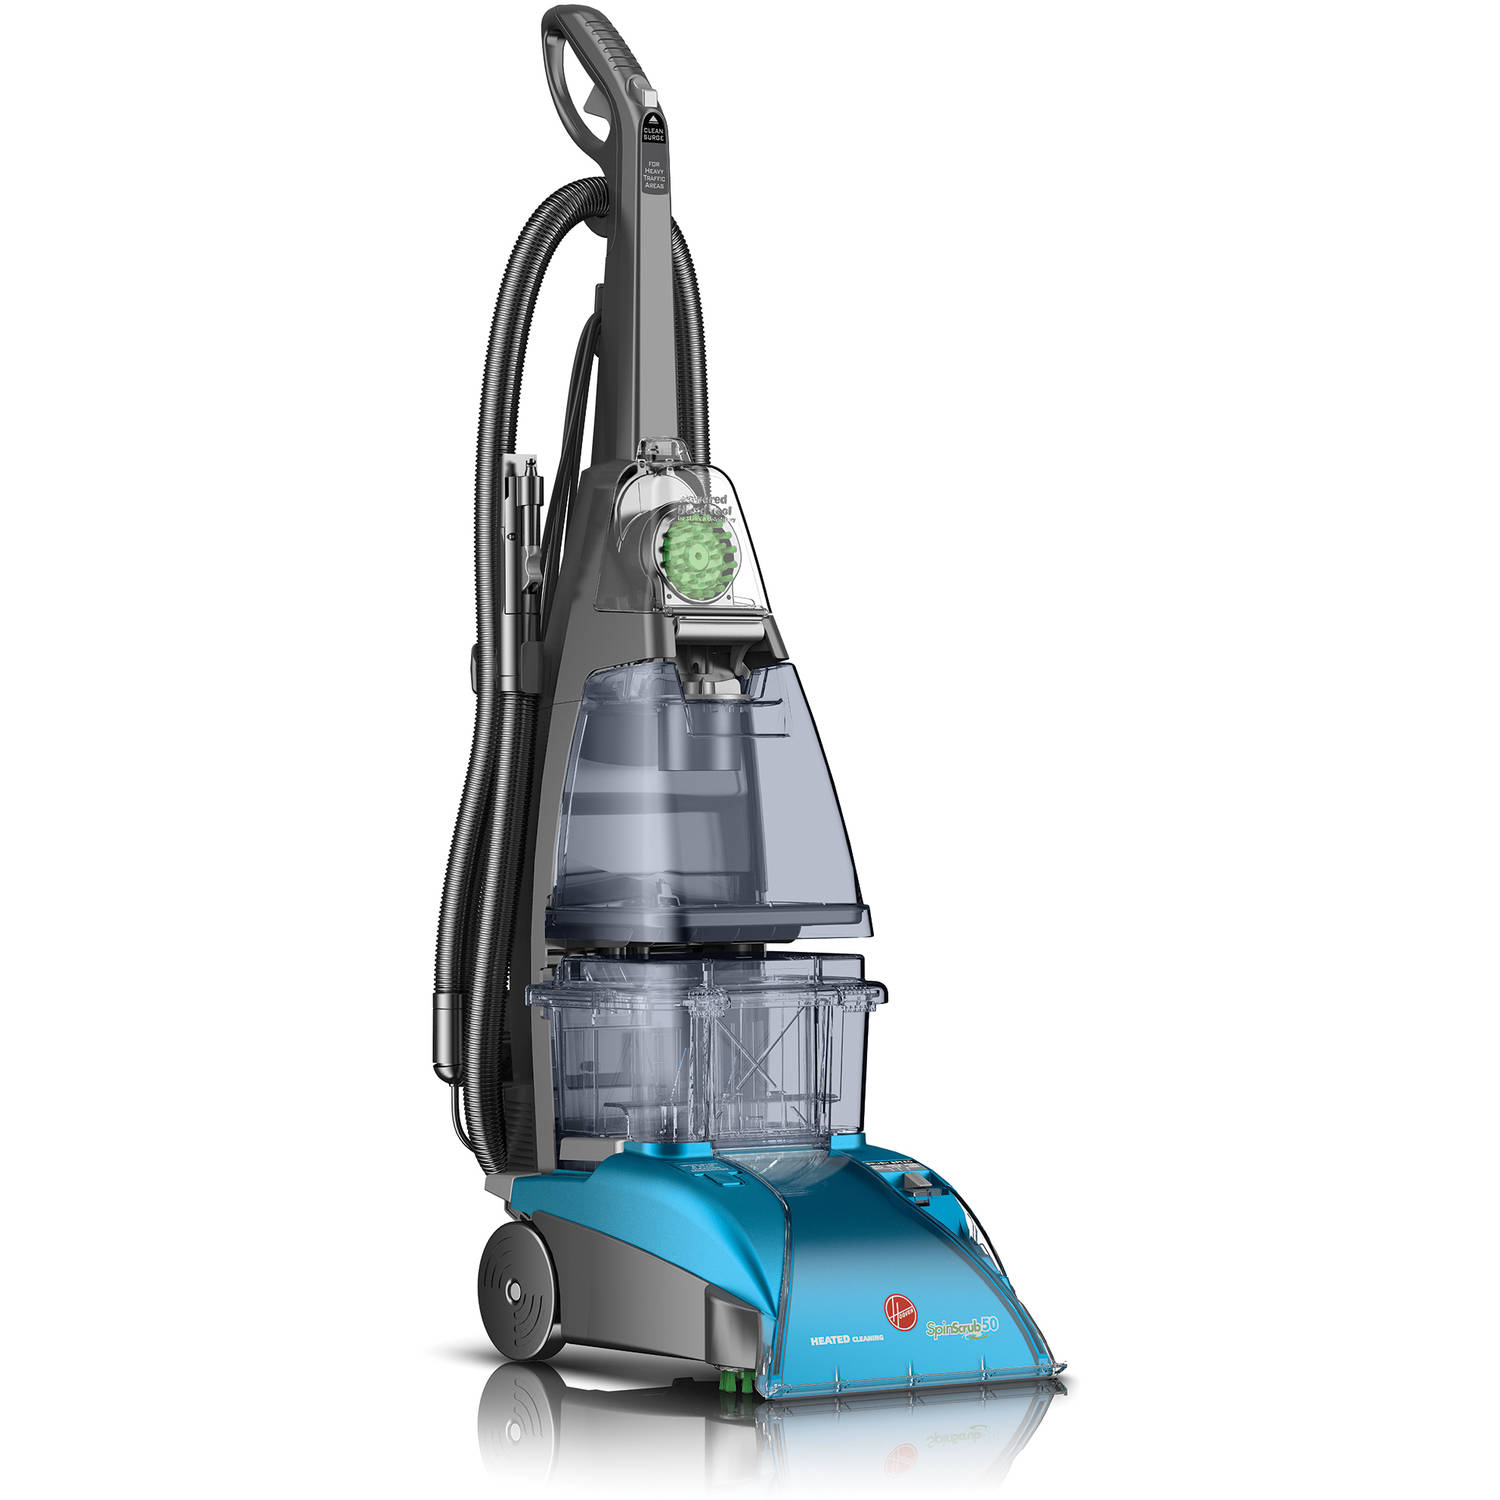 Hoover Steamvac Carpet Cleaner With Clean Surge F5914 90 - Carpet Vidalondon